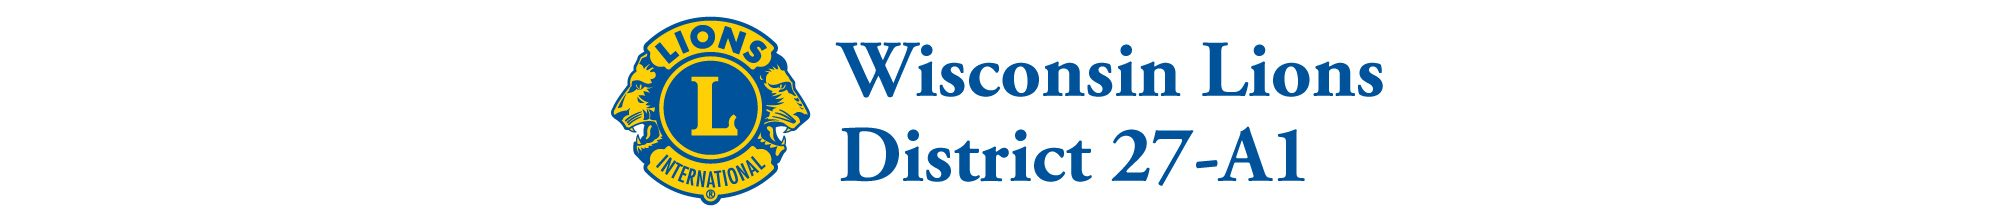 District 27-A1